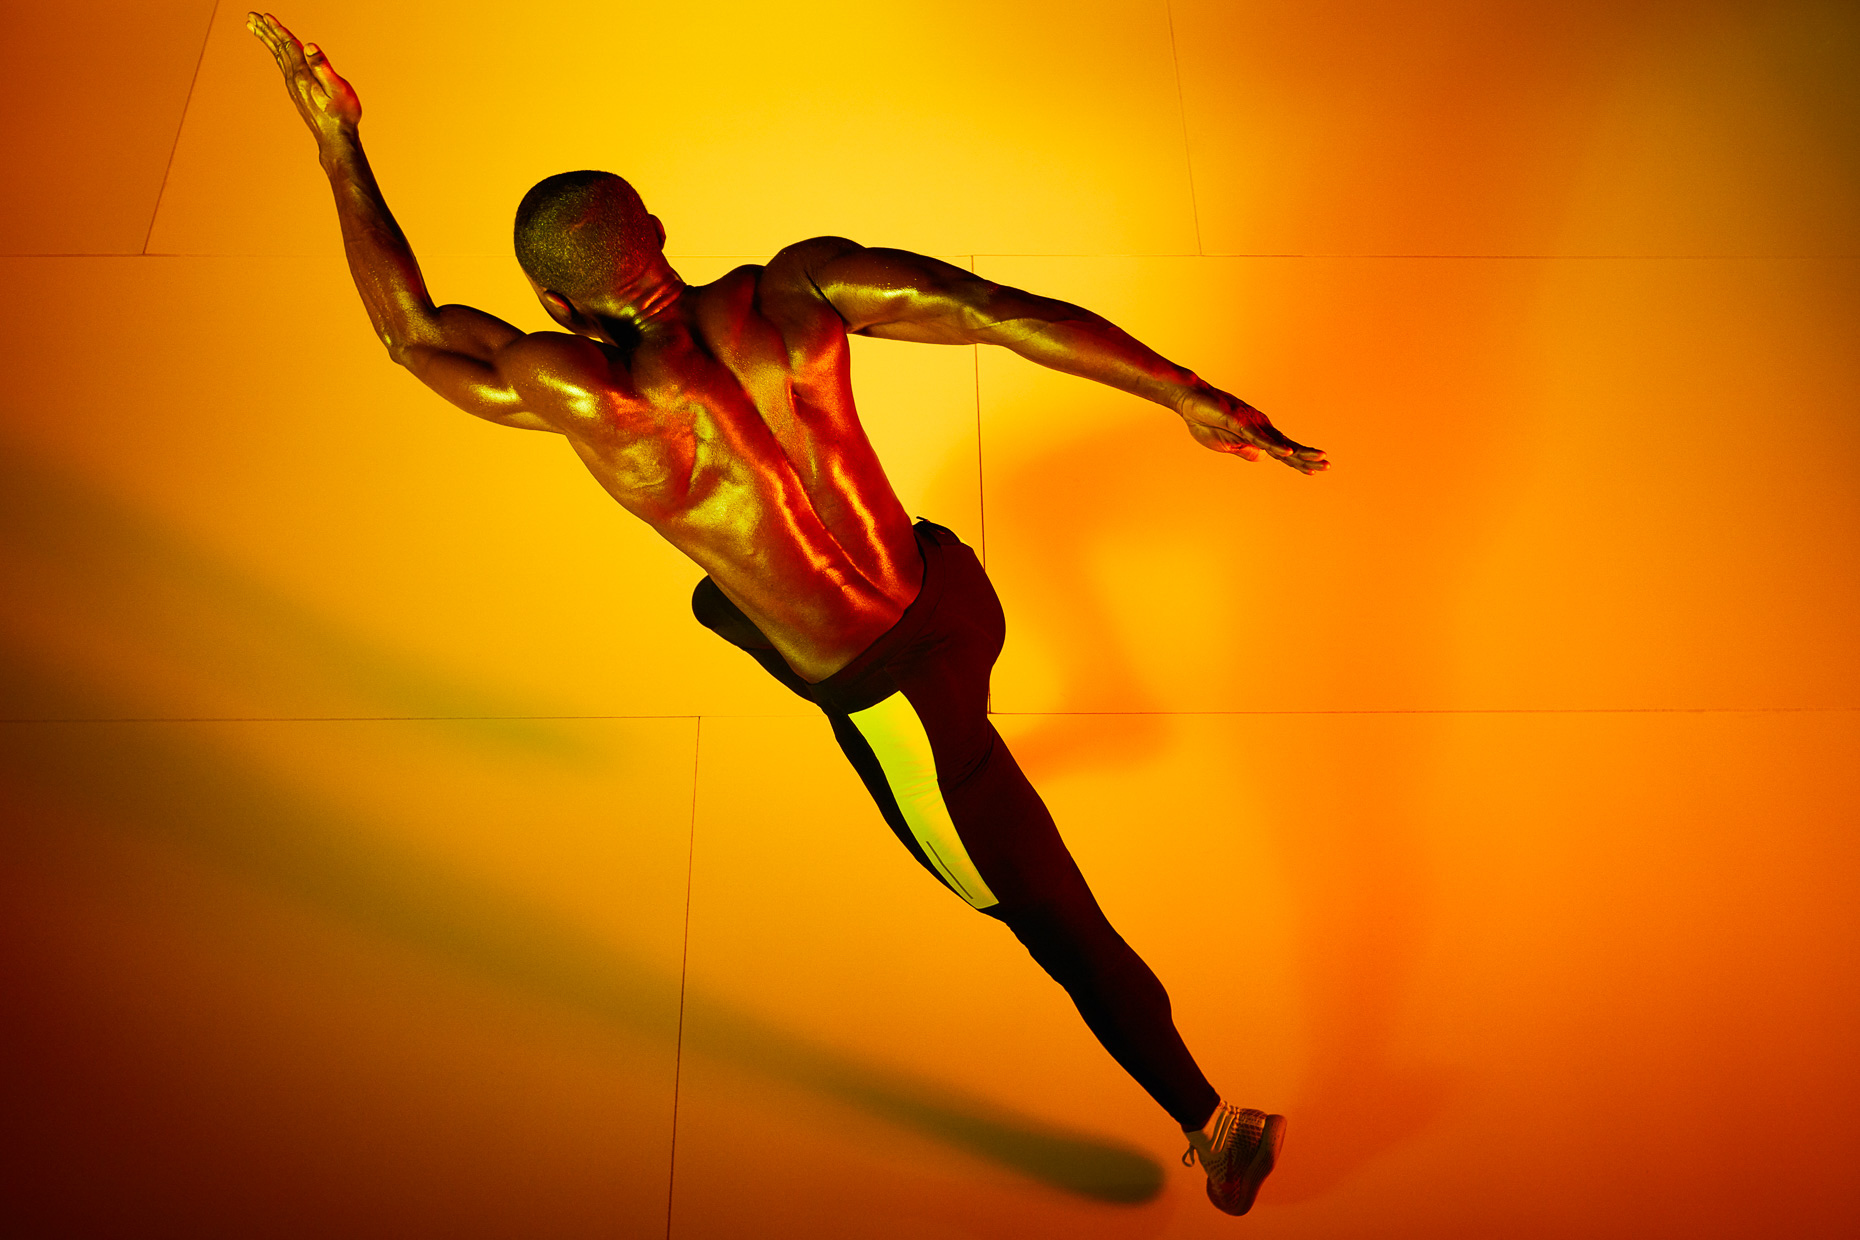 Nike Running with David Kojo Aidoo shot from above with colorful orange and yellow gels by Andy Batt